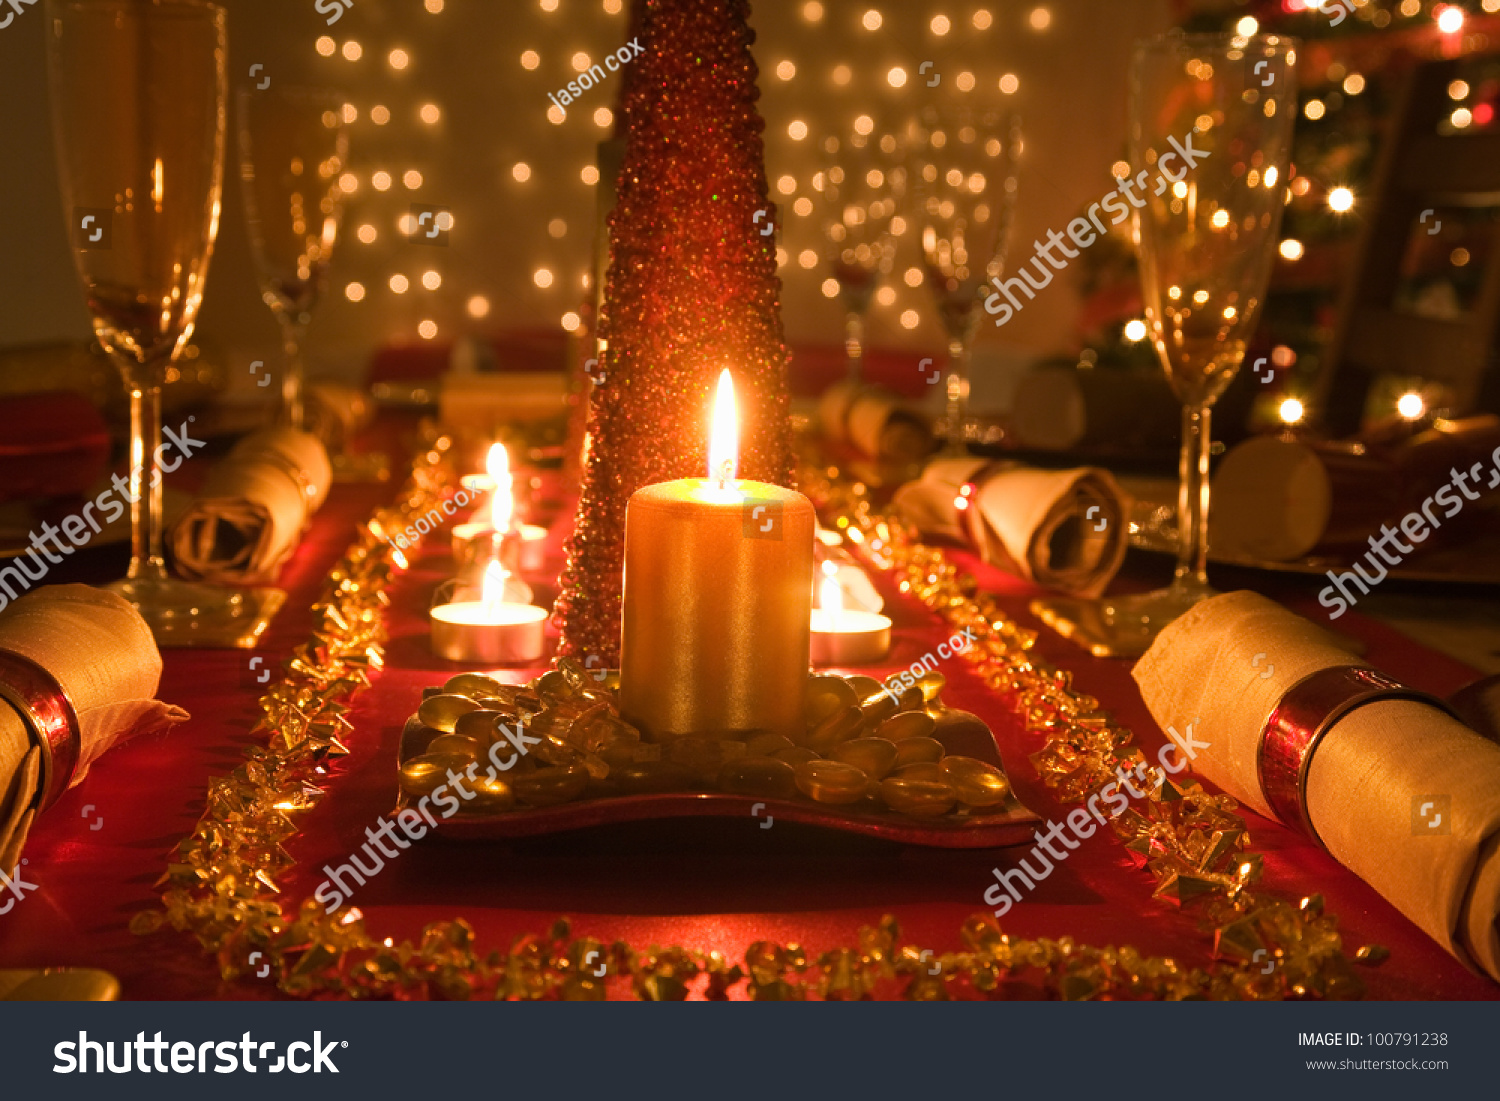 Christmas table decorations red and gold - Table Decorated Red And Gold For Christmas Day Dinner Preview Save To A Lightbox